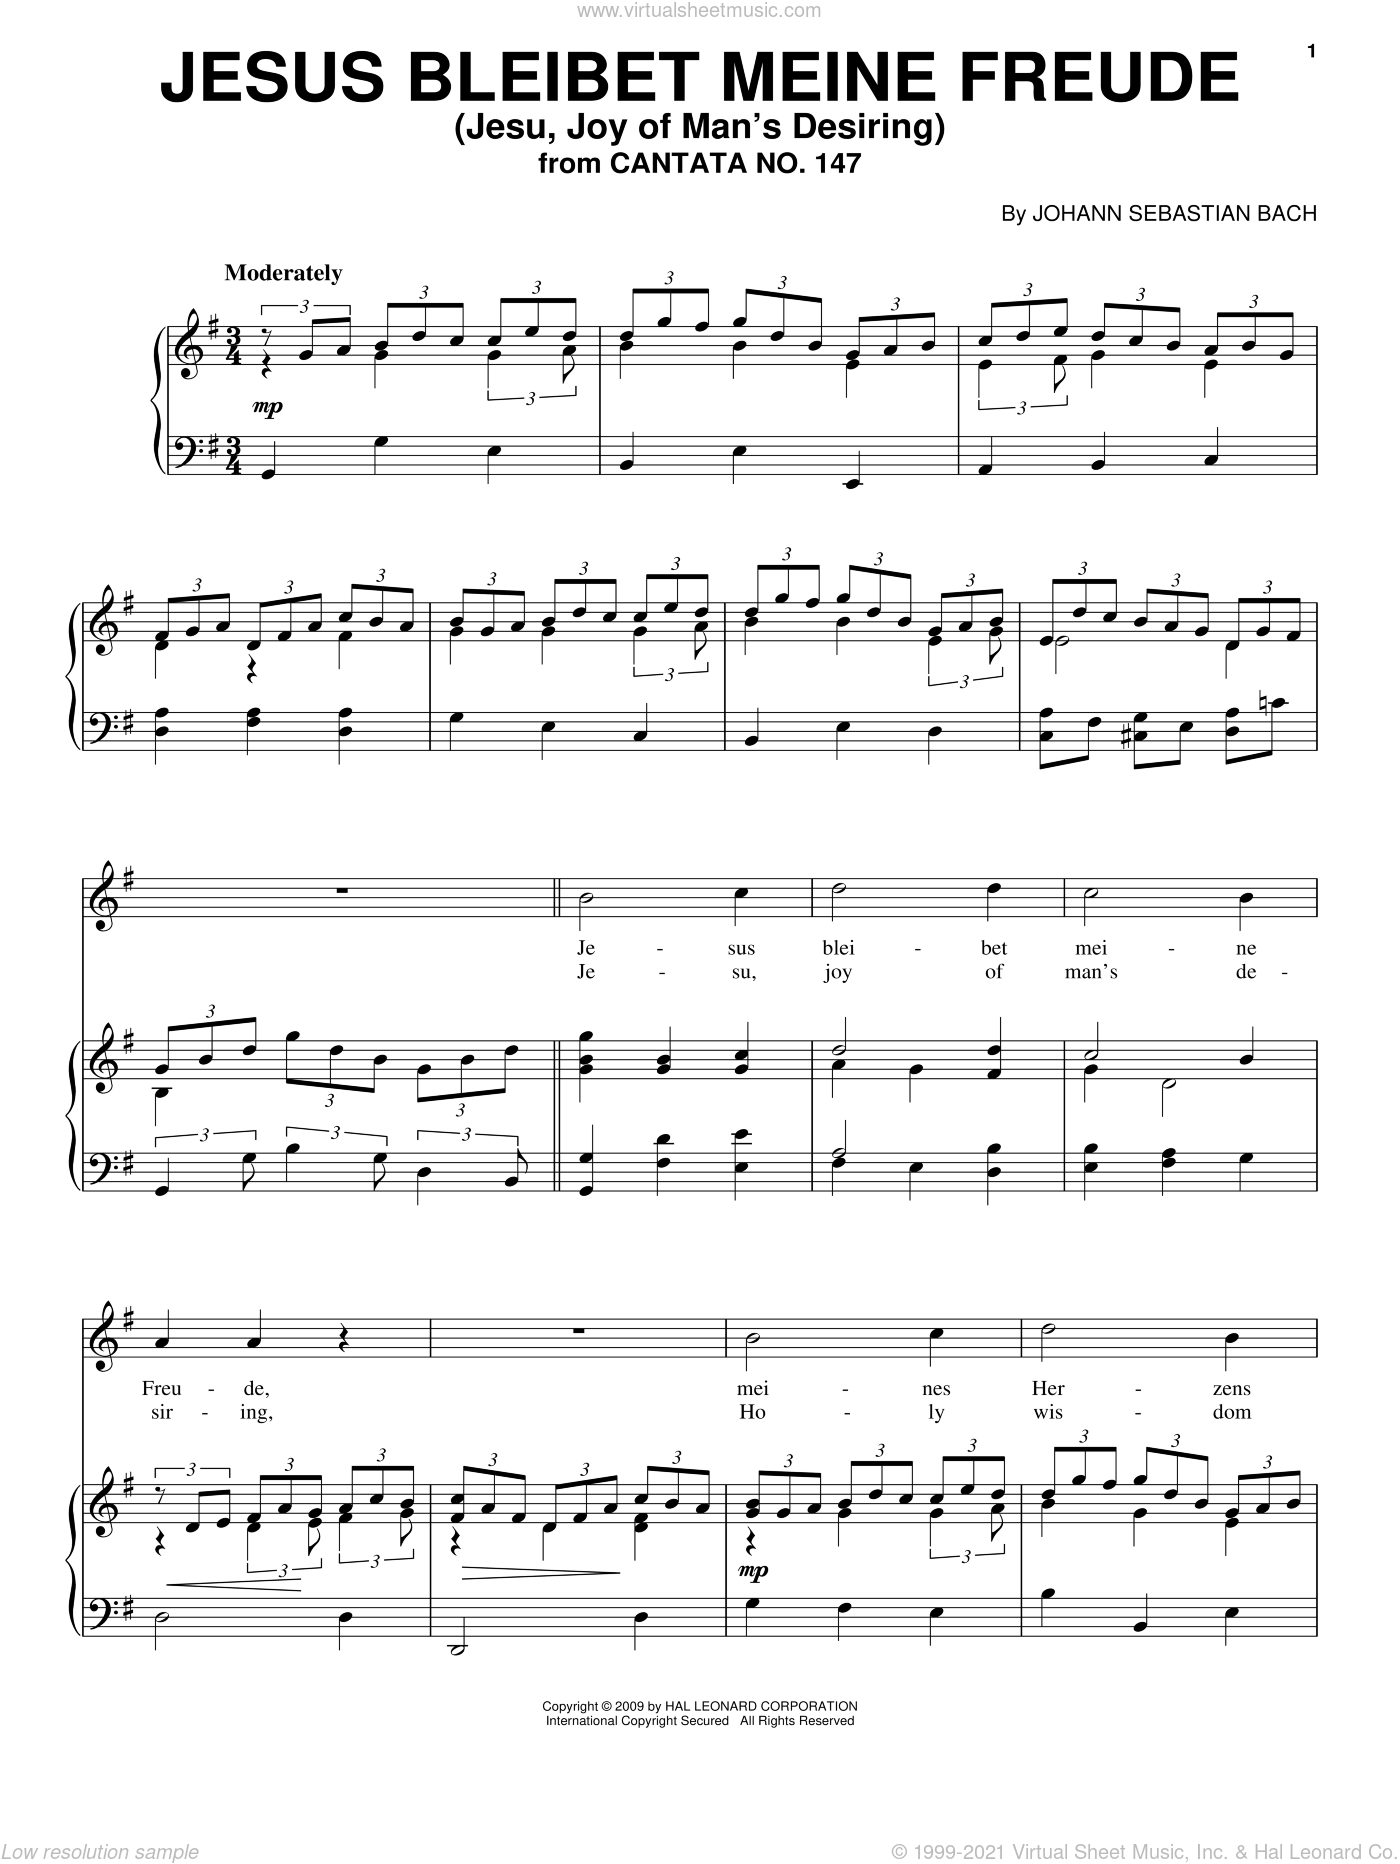 Jesus Bleibet Meine Freude sheet music for voice, piano or guitar by Johann Sebastian Bach, classical wedding score, intermediate skill level